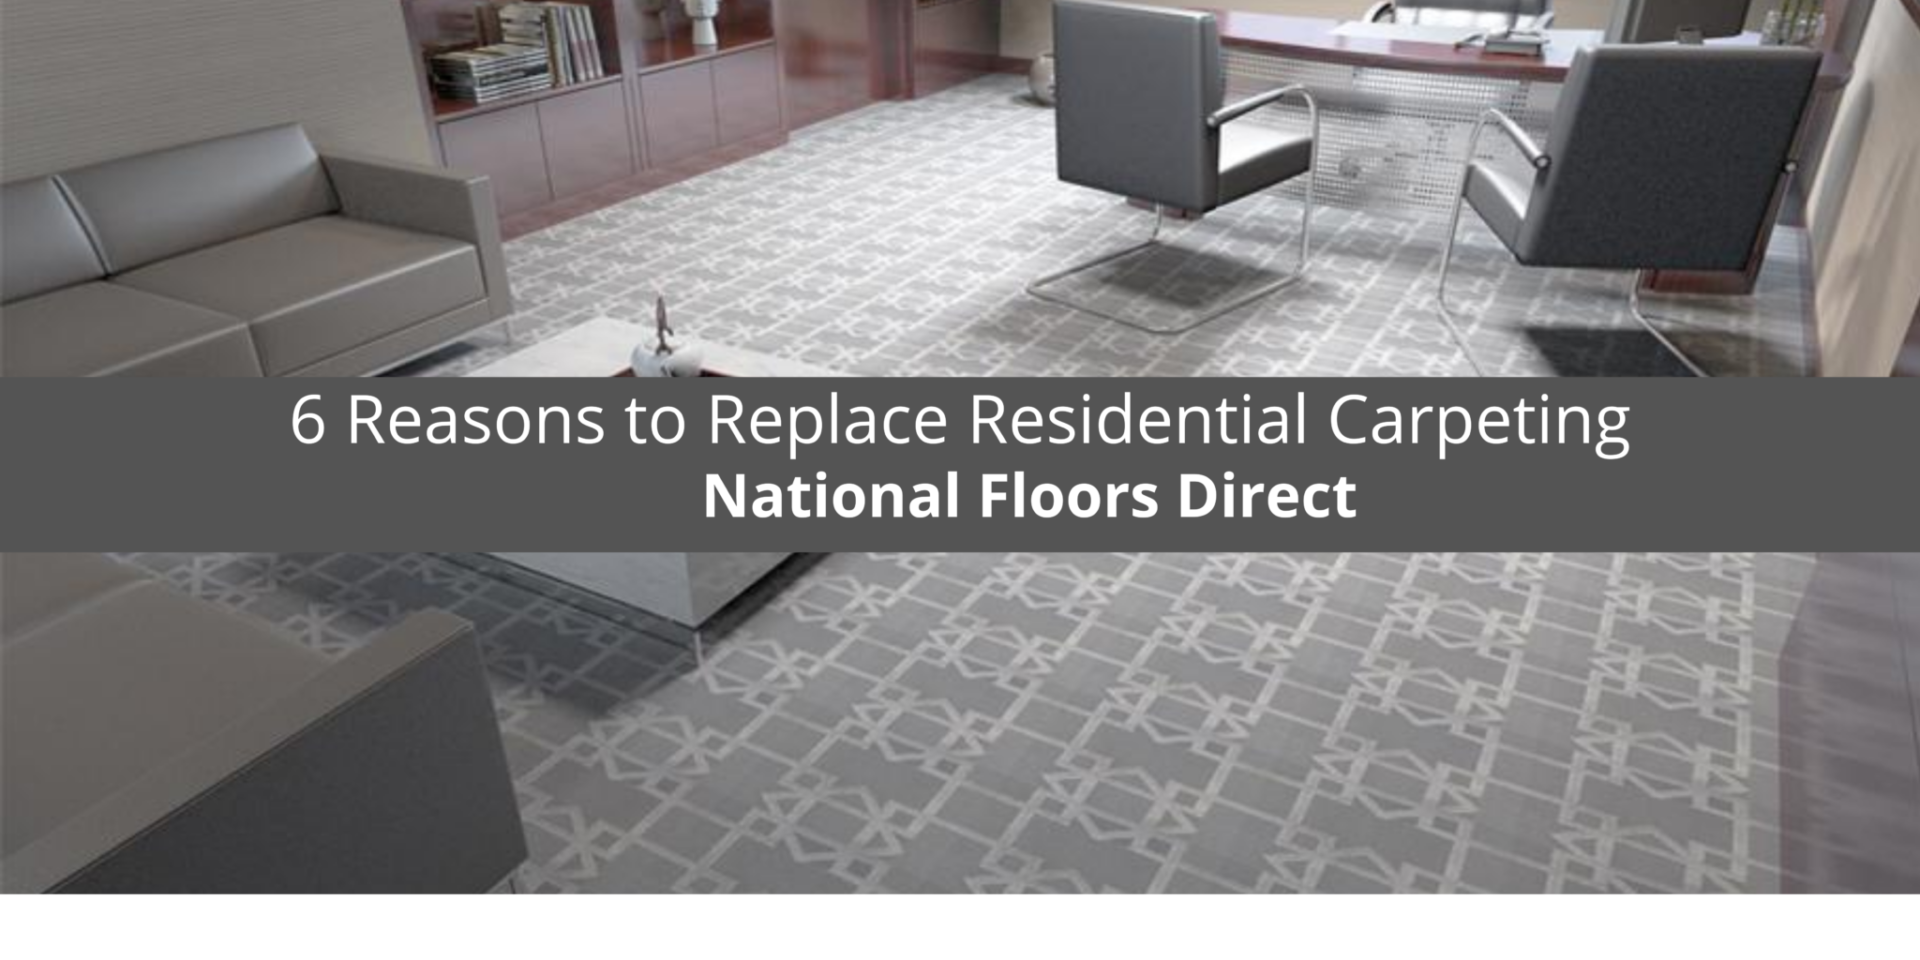 National Floors Direct Reviews 6 Reasons to Replace Residential Carpeting